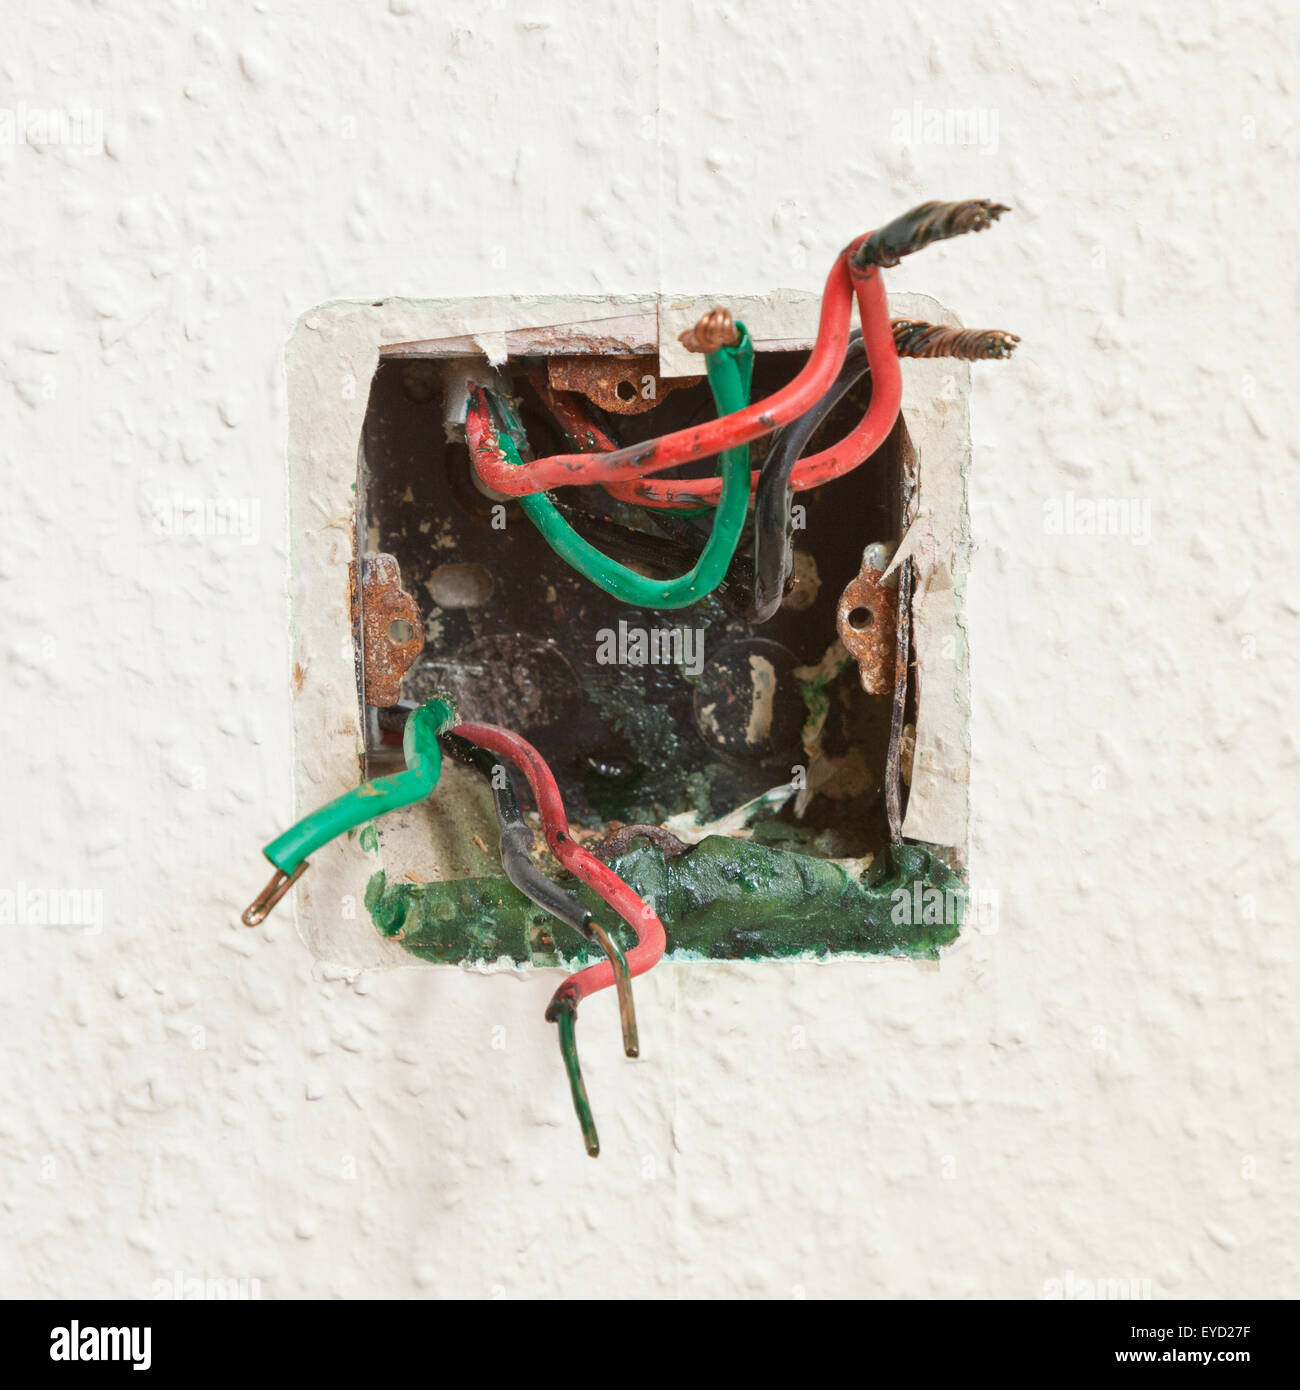 A17800206 Wiring A Plug Socket Into A House Wall Uk Construction